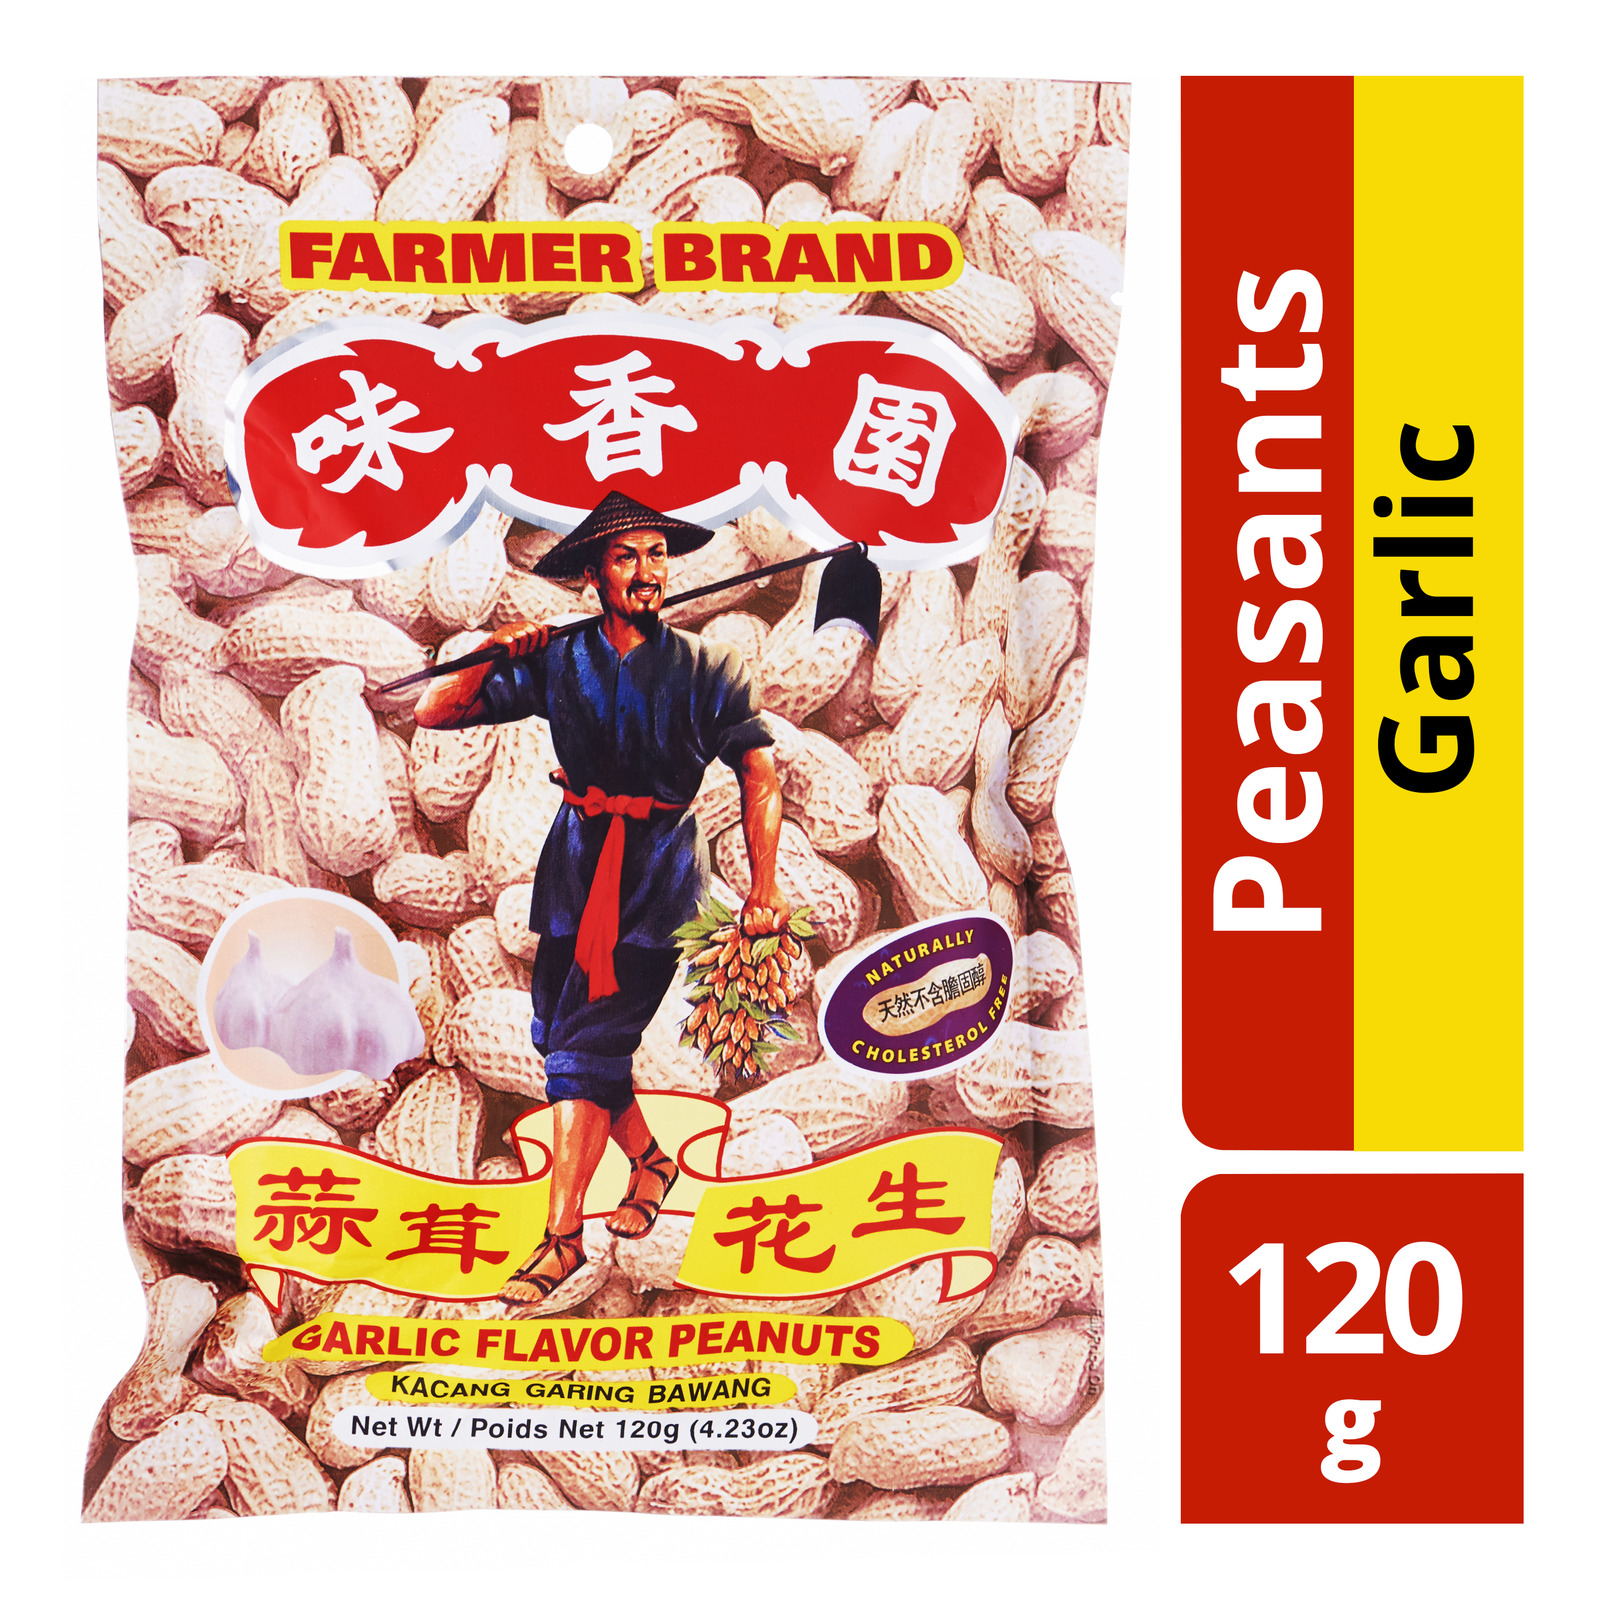 Farmer Brand Peanuts - Garlic